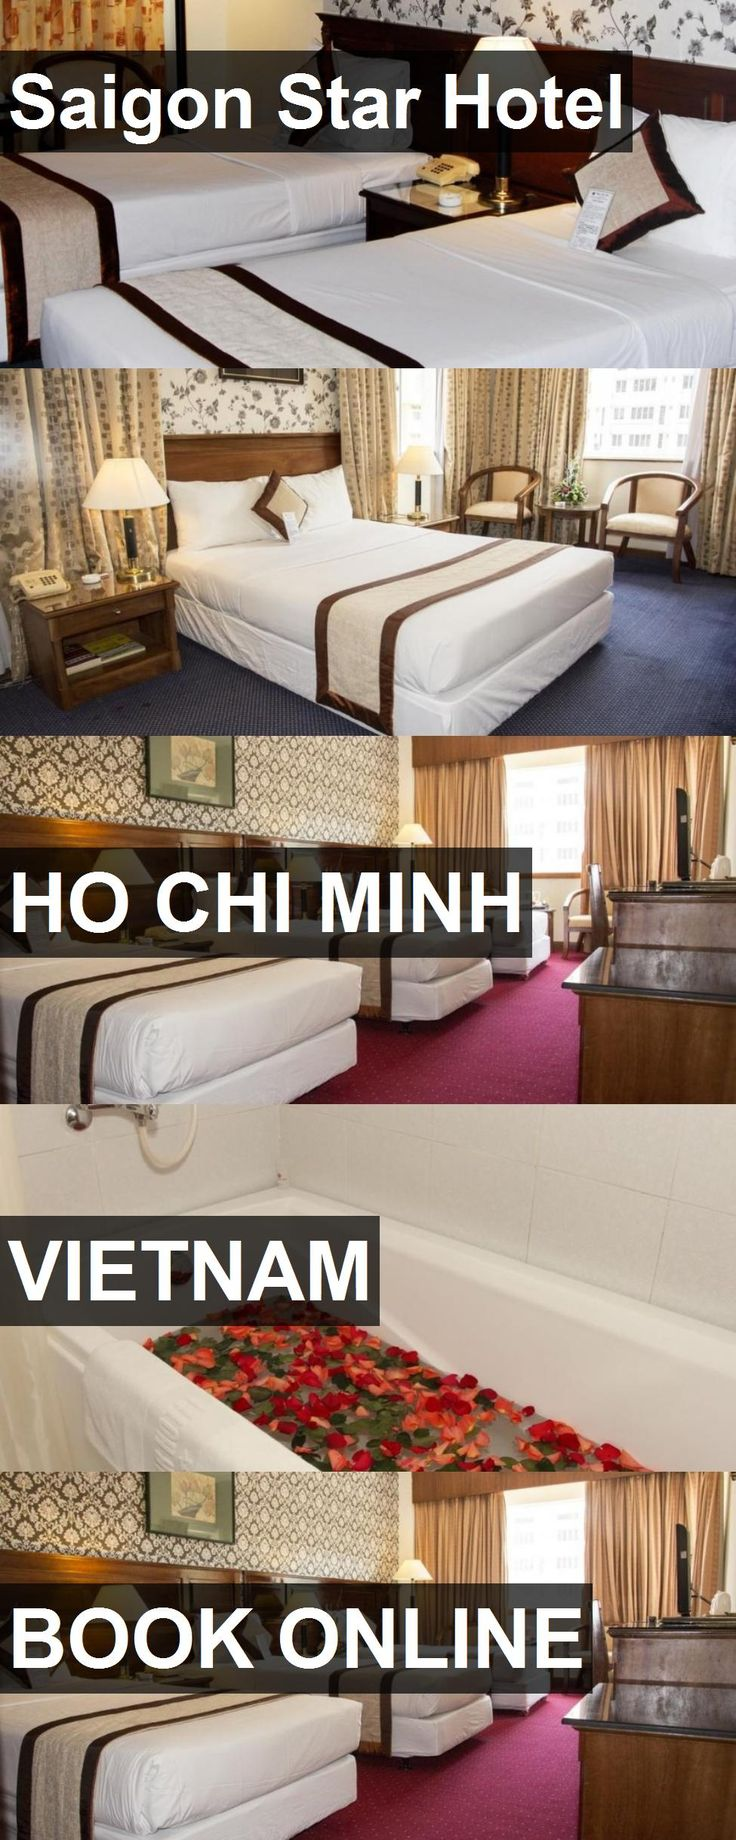 Hotel Saigon Star Hotel in Ho Chi Minh, Vietnam. For more information, photos, reviews and best prices please follow the link. #Vietnam #HoChiMinh #SaigonStarHotel #hotel #travel #vacation